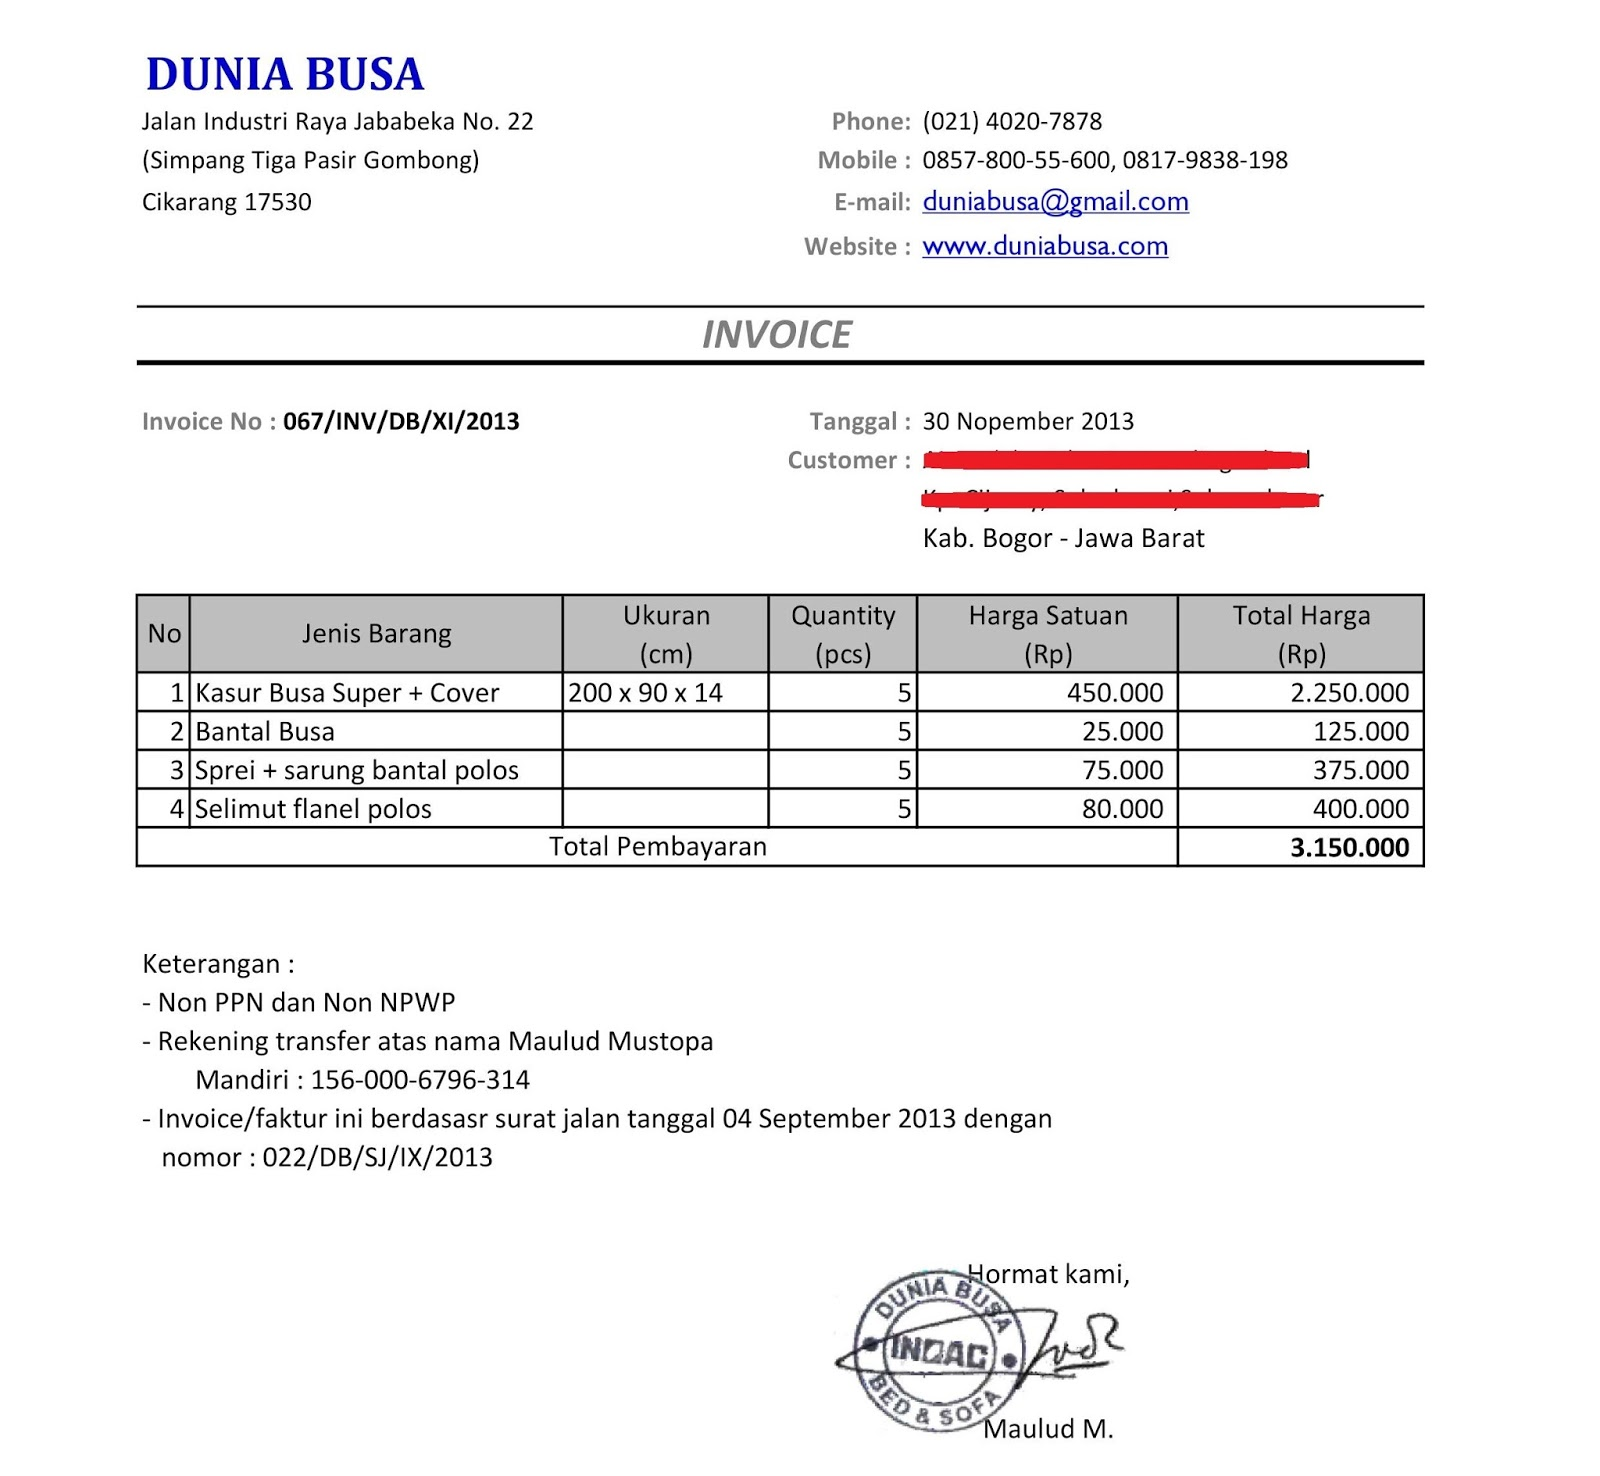 Centralasianshepherdus  Nice Free Invoice Online  Create Invoice Online  Invoice Template  With Handsome Contoh Format Invoice Atau Surat Tagihan  Brankas Arsip  Free Invoice Online With Cool Fake Hotel Receipt Also Fake Paypal Receipt In Addition Receipt For Donation And Free Printable Rent Receipts As Well As Where Can I Buy A Receipt Book Additionally Read Receipt Imessage From Sklepco With Centralasianshepherdus  Handsome Free Invoice Online  Create Invoice Online  Invoice Template  With Cool Contoh Format Invoice Atau Surat Tagihan  Brankas Arsip  Free Invoice Online And Nice Fake Hotel Receipt Also Fake Paypal Receipt In Addition Receipt For Donation From Sklepco